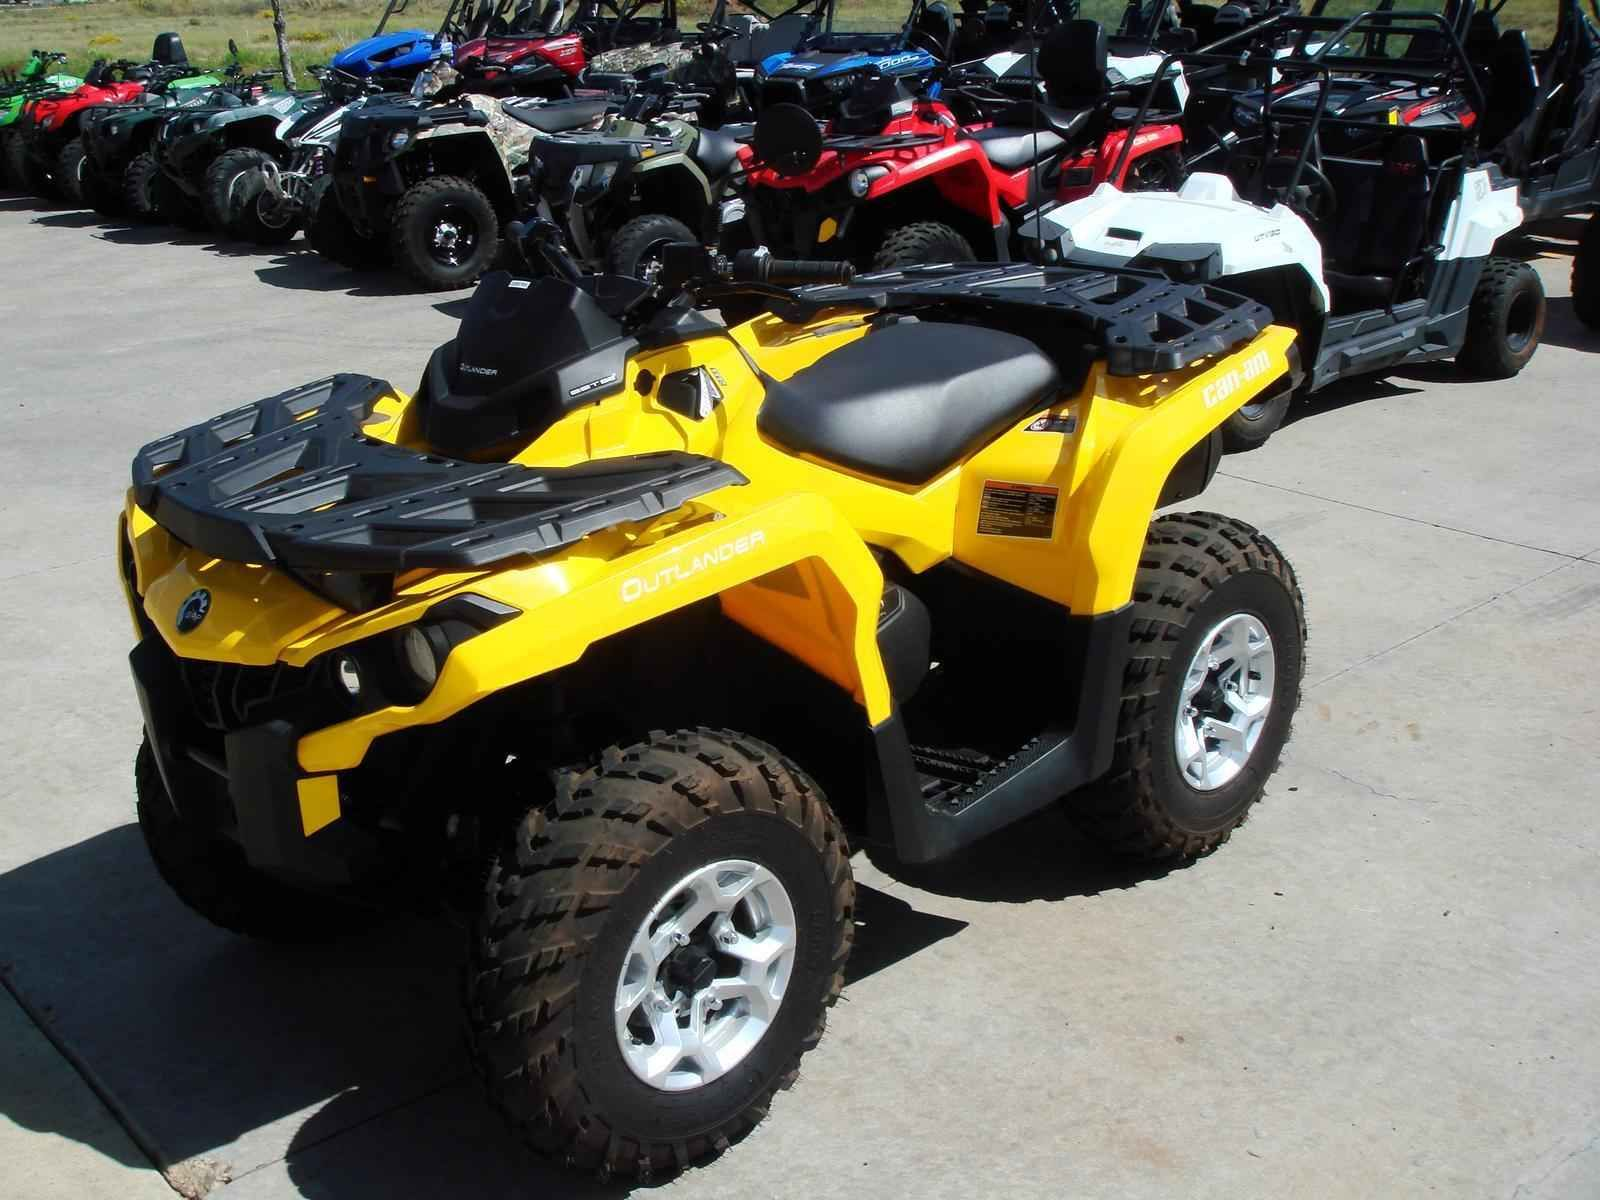 Used 2015 Can-Am OUTLANDER 500 DPS ATVs For Sale in Arizona. 2015 CAN-AM OUTLANDER 500 DPS, THIS IS ONE OF OUR RENTAL UNITS PRICE GOES DOWN AS UNIT GETS RENTED CALL FOR CURRENT DEAL